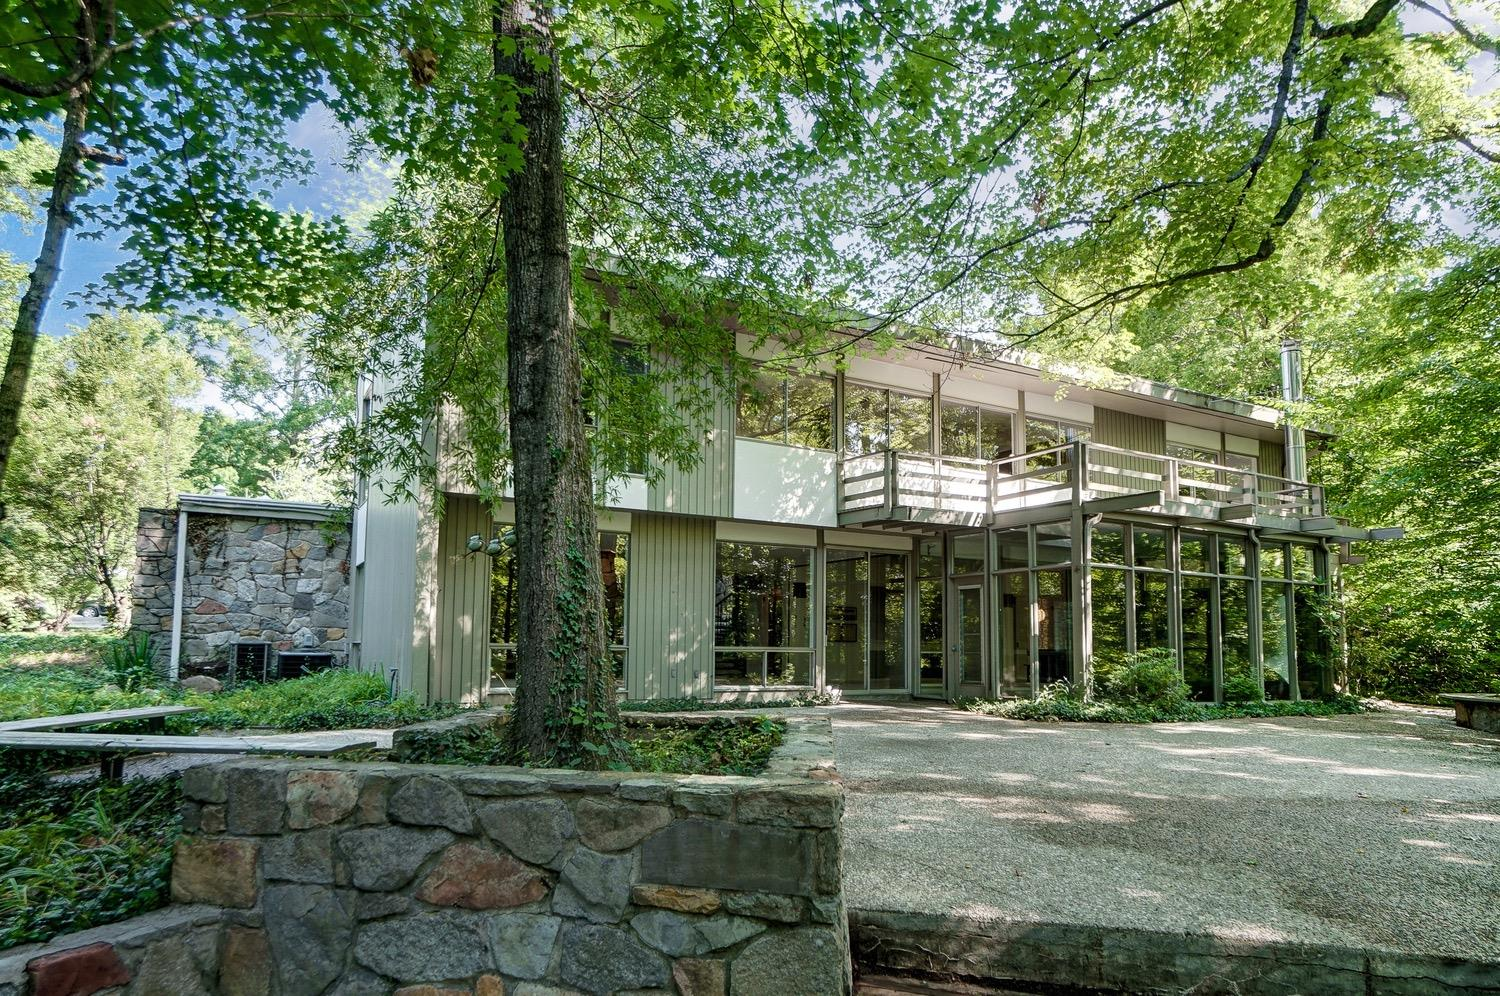 The rear of the home features plenty of windows to enjoy the views of the private wooded backyard and enormous patio and deck areas.